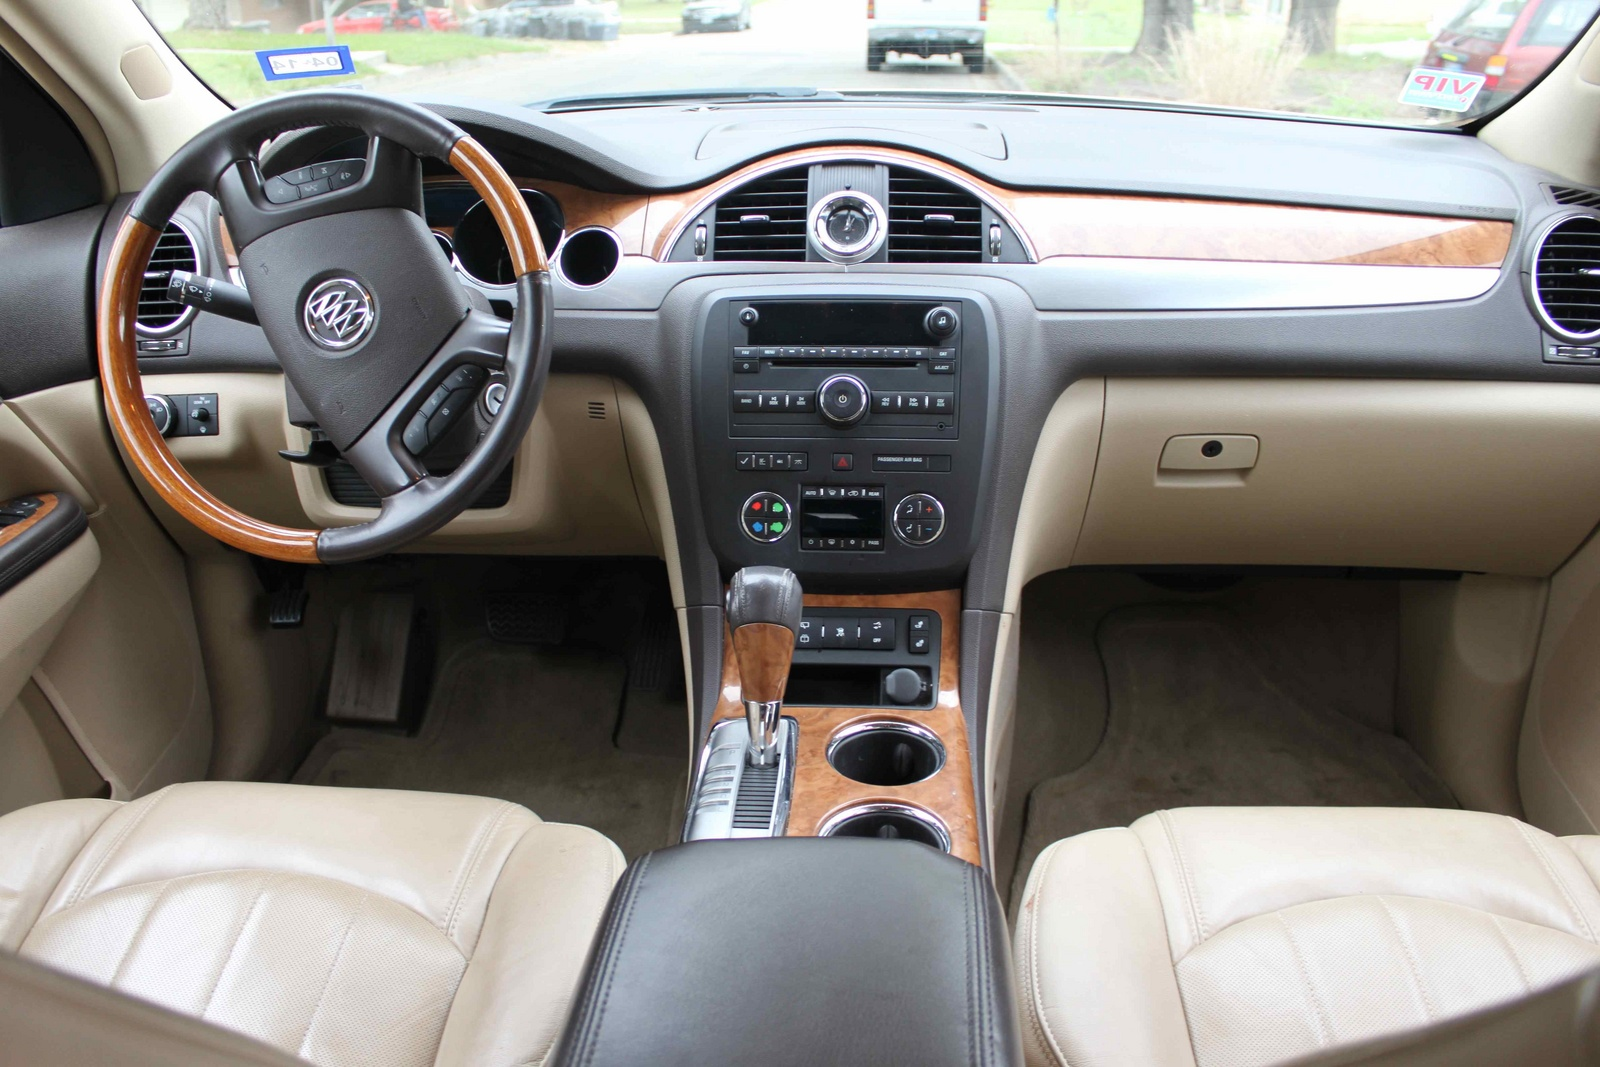 when will the 2014 buick enclave come out autos weblog. Black Bedroom Furniture Sets. Home Design Ideas